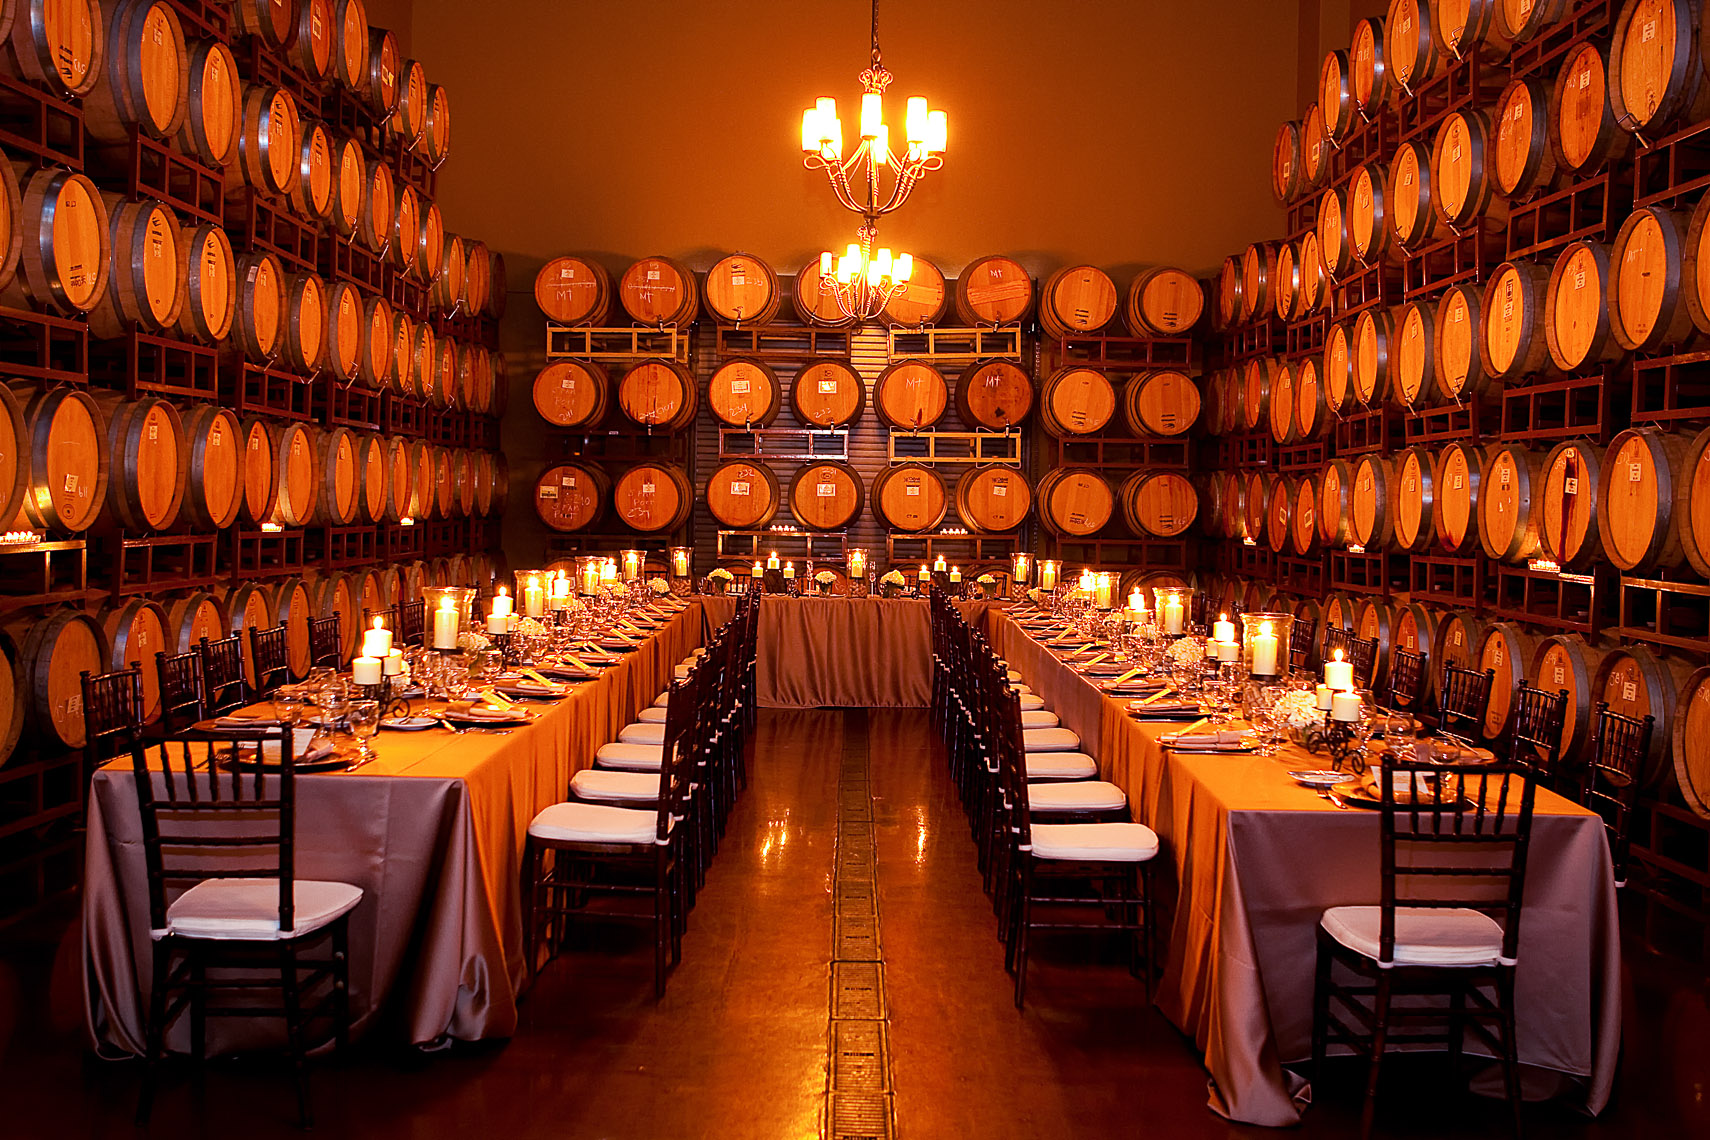 Wilson Creek Barrel Room Wedding - Temecula